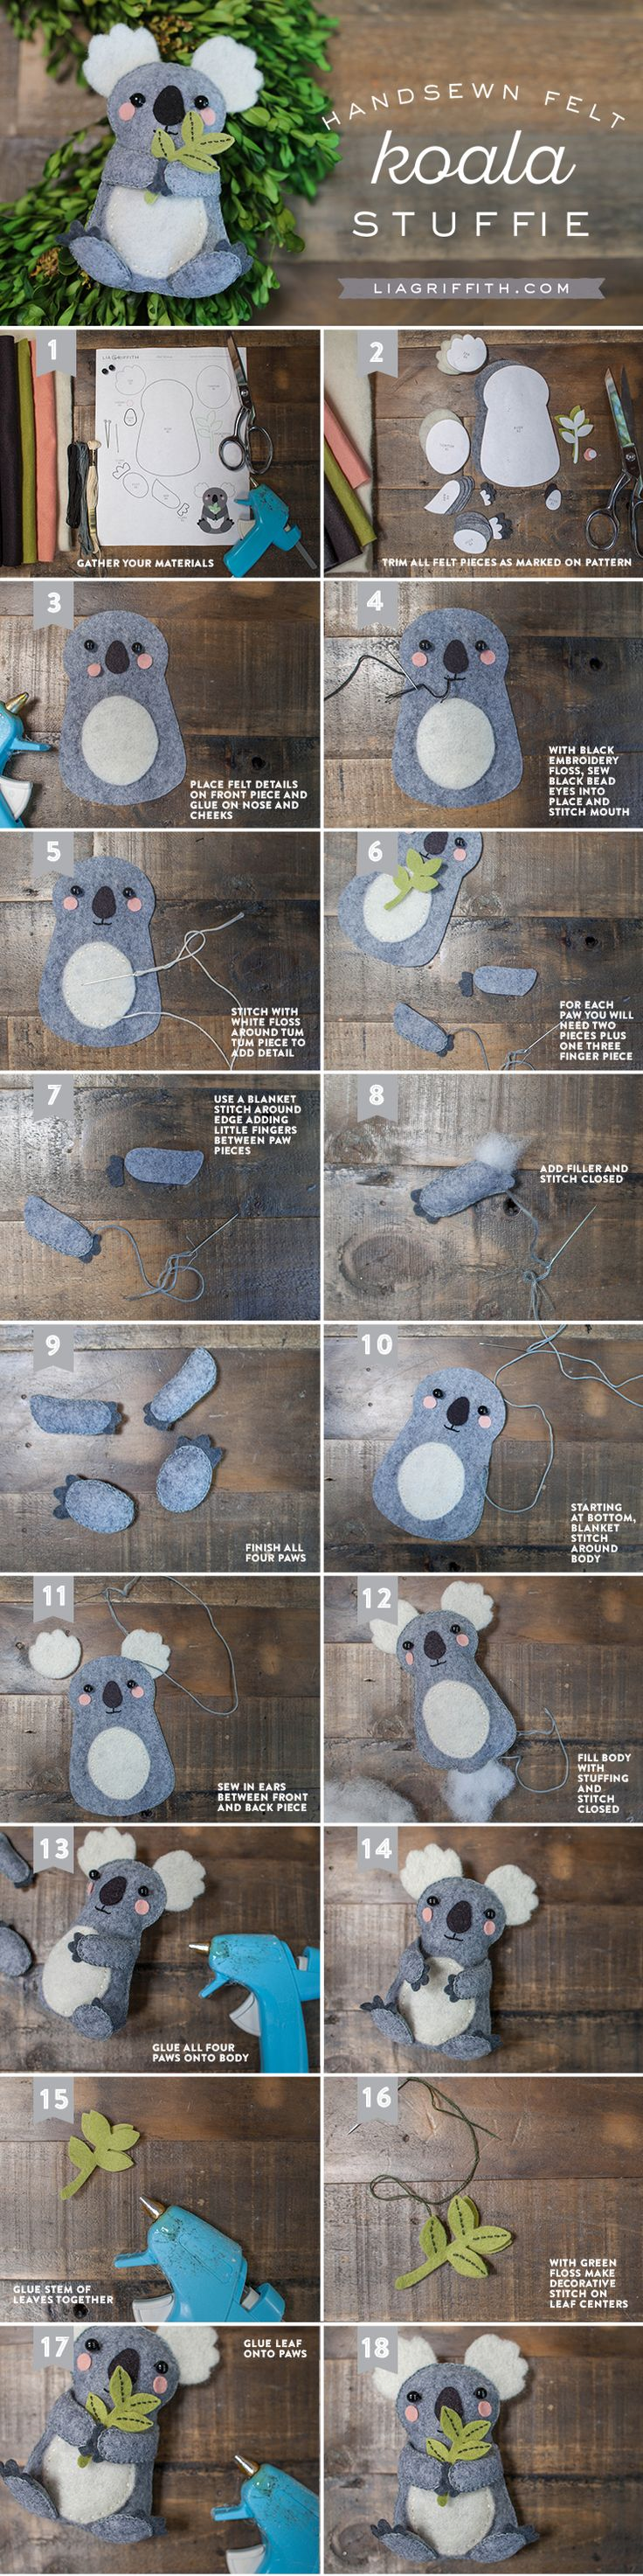 Koala Stuffie Tutorial from Michaels Makers Lia Griffith